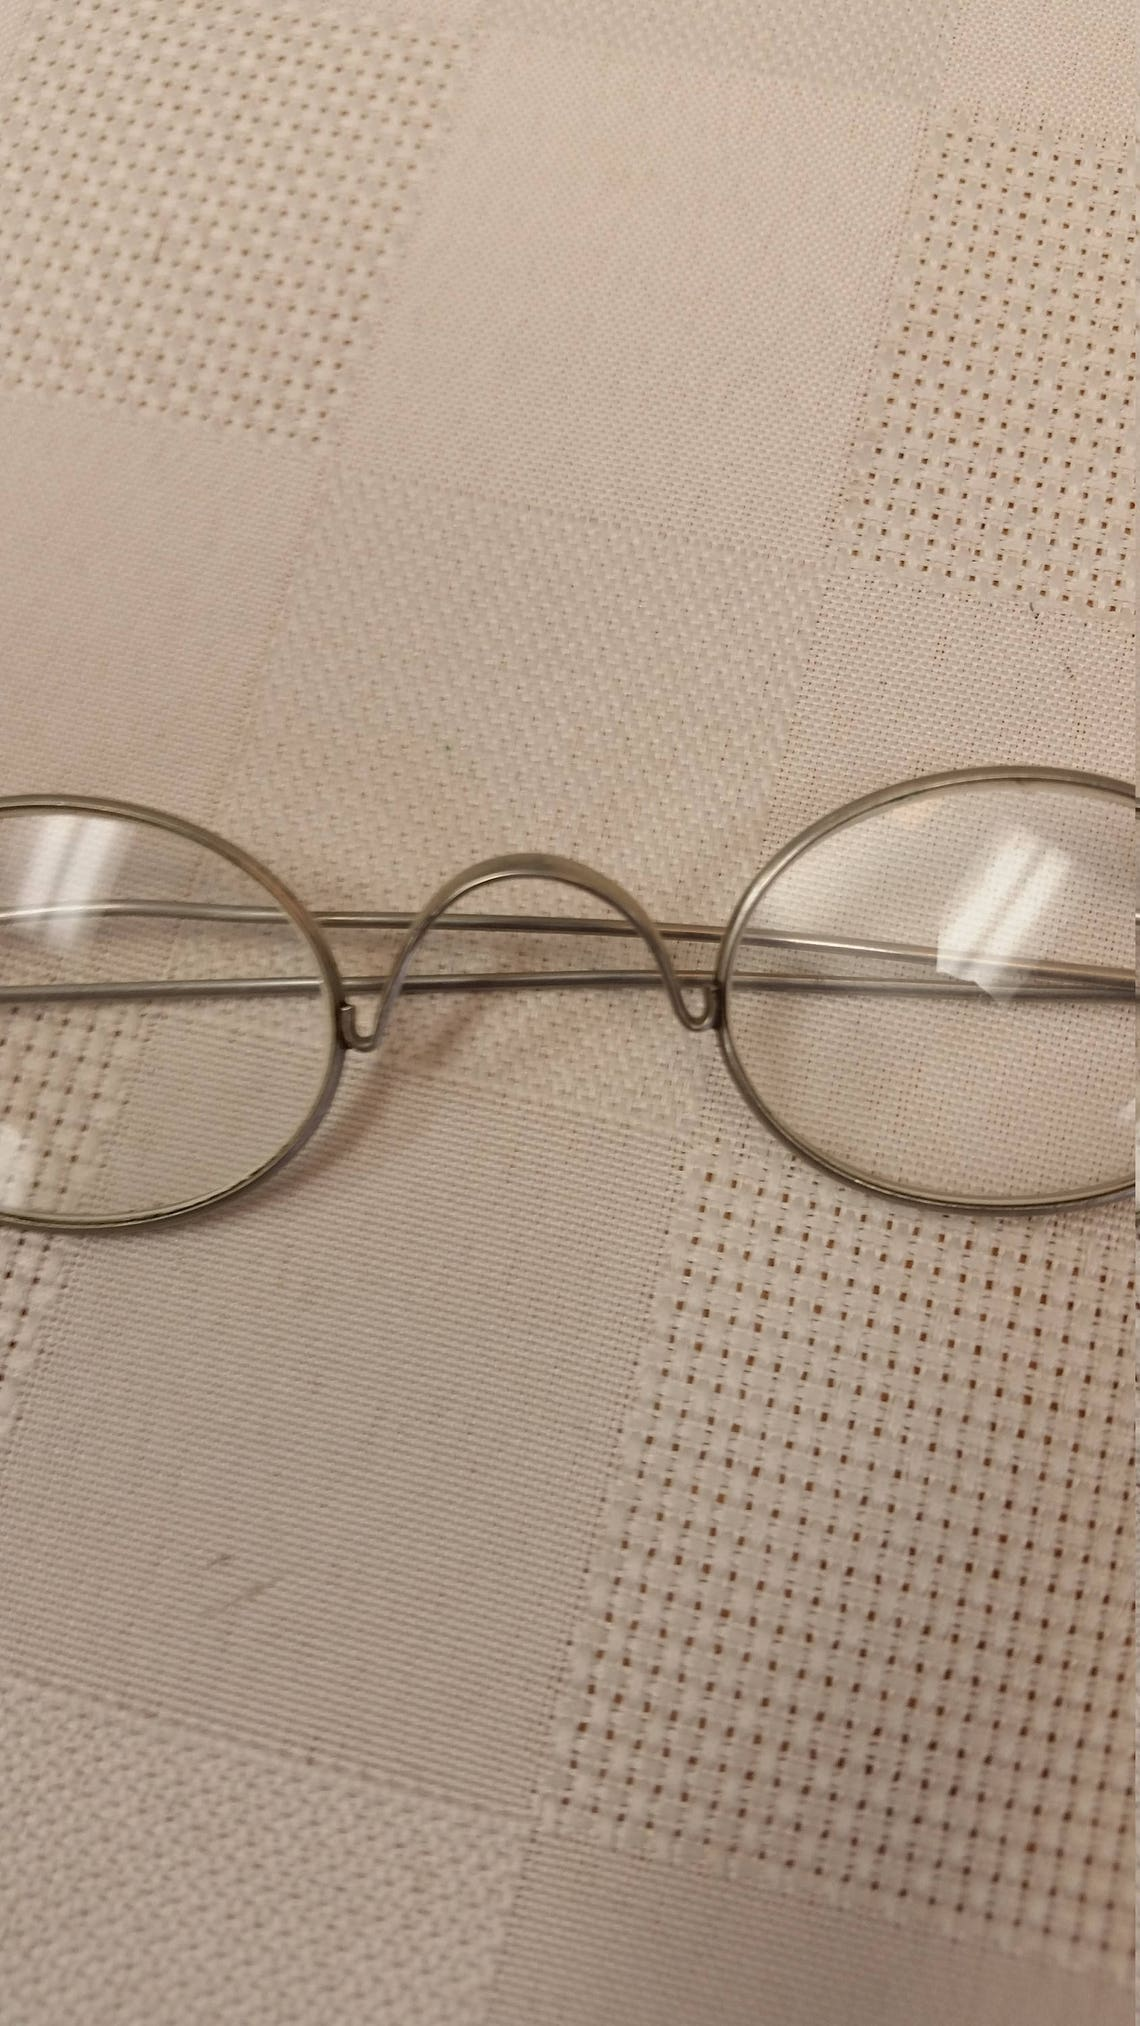 1800s Silver Reading Eyeglasses; + 4.25 Strength; Excellent Antique Condition; Ready to Wear: Great for Reenactors / Living History